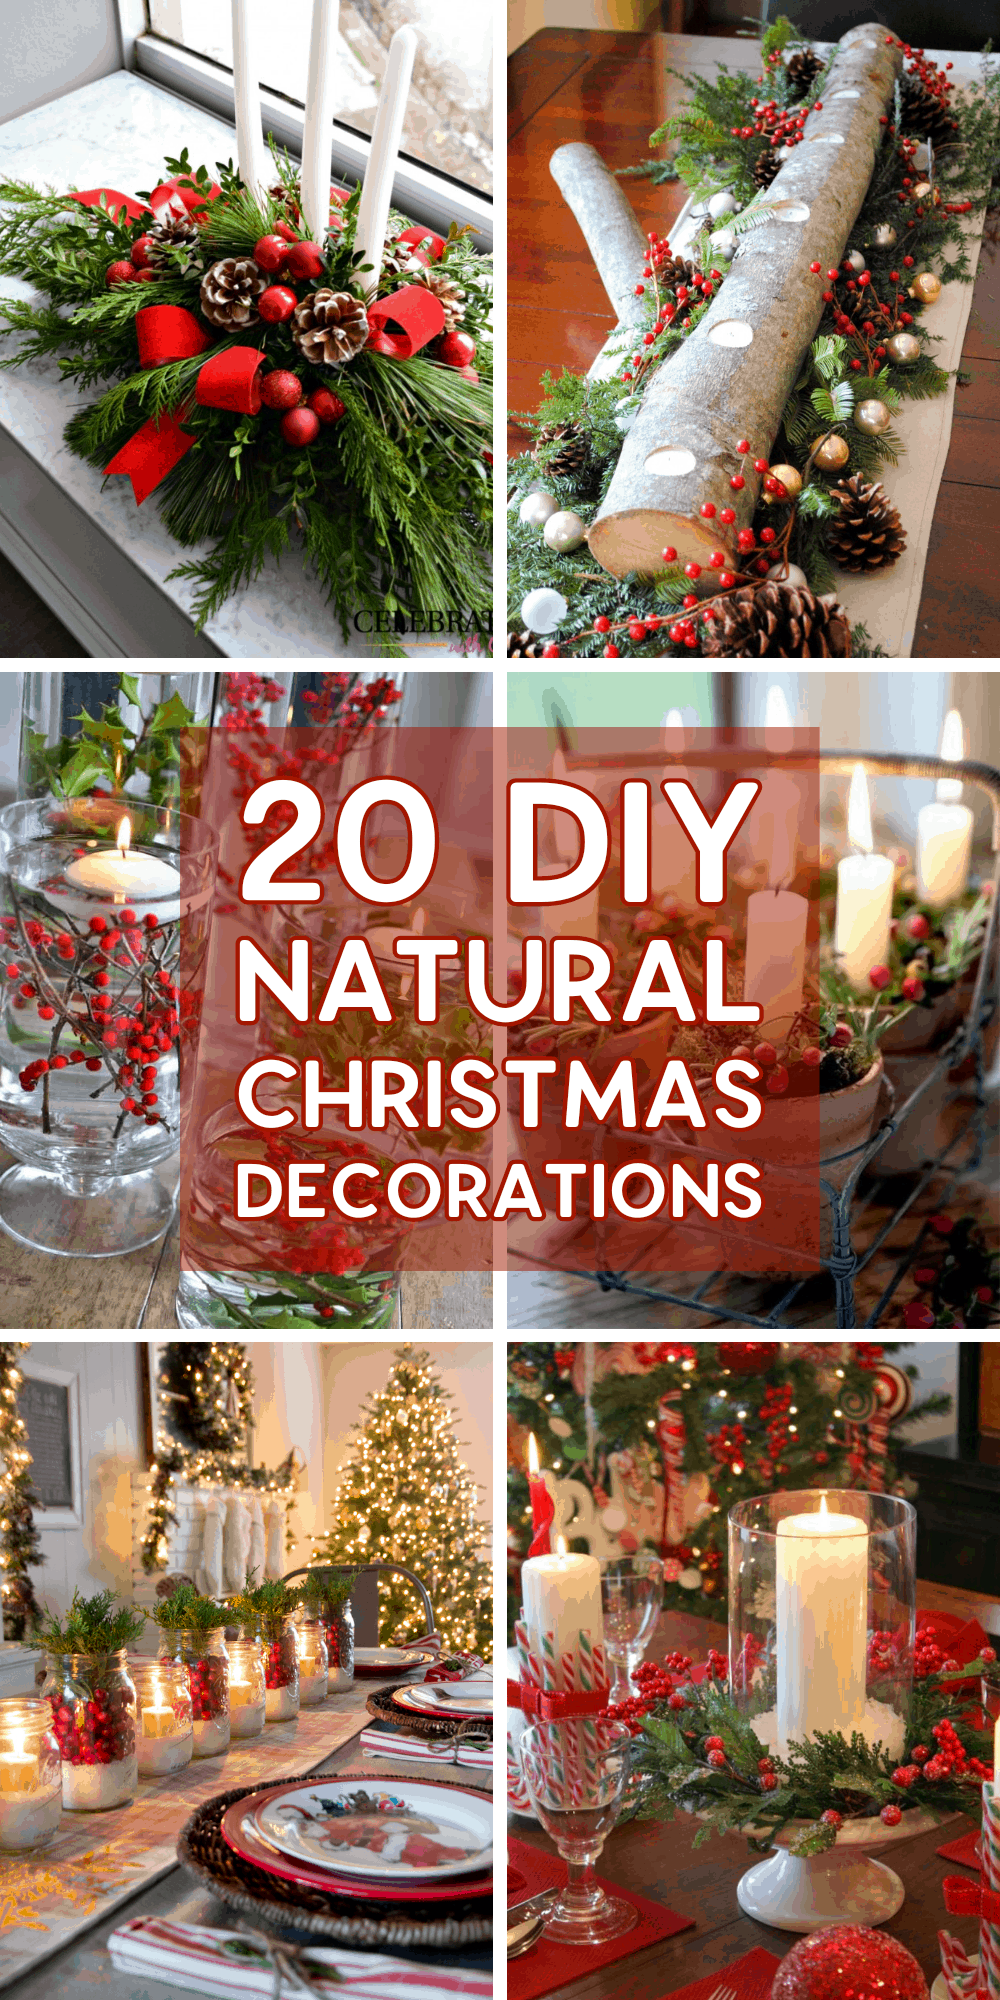 20 Gorgeous Natural DIY Christmas Decorations & Centrepieces